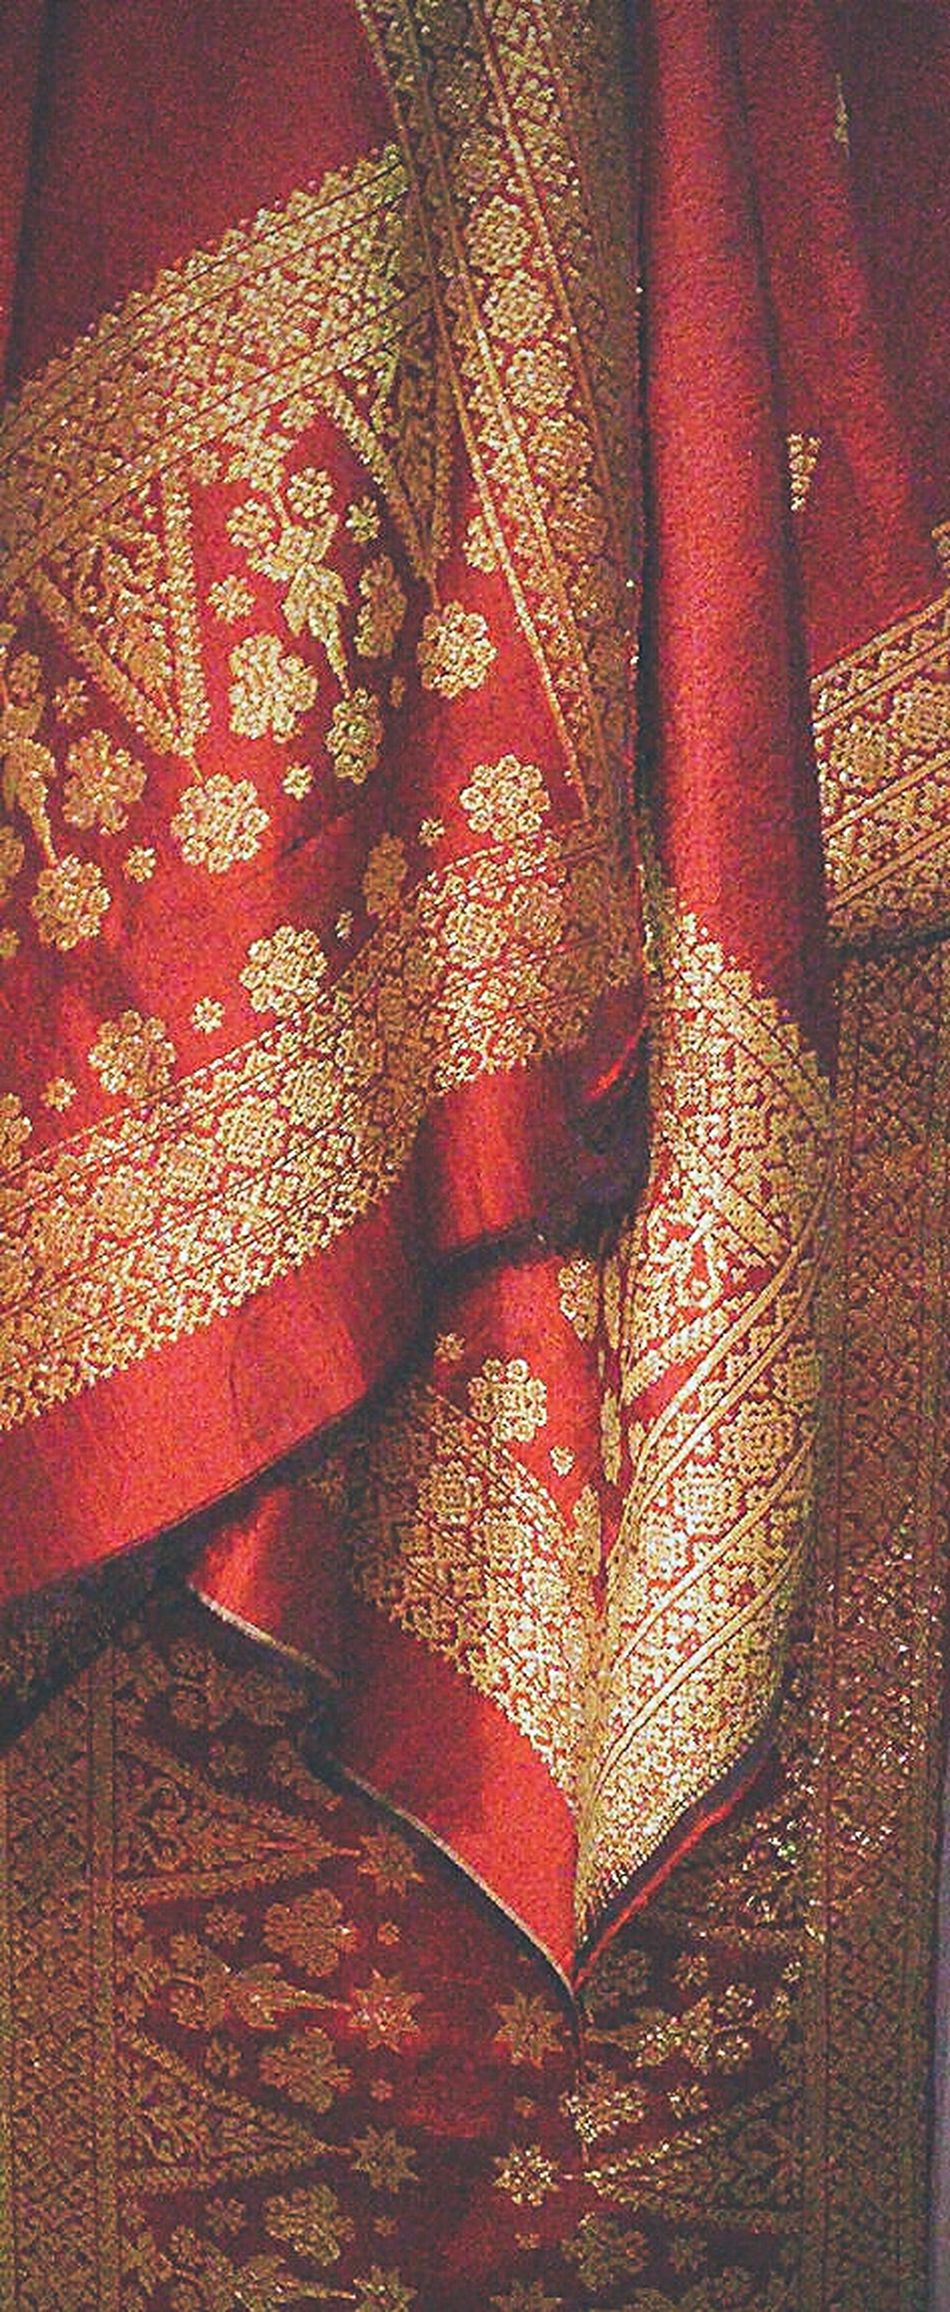 Art Of Songket Songket Palembang Asian Culture Traditional Clothing